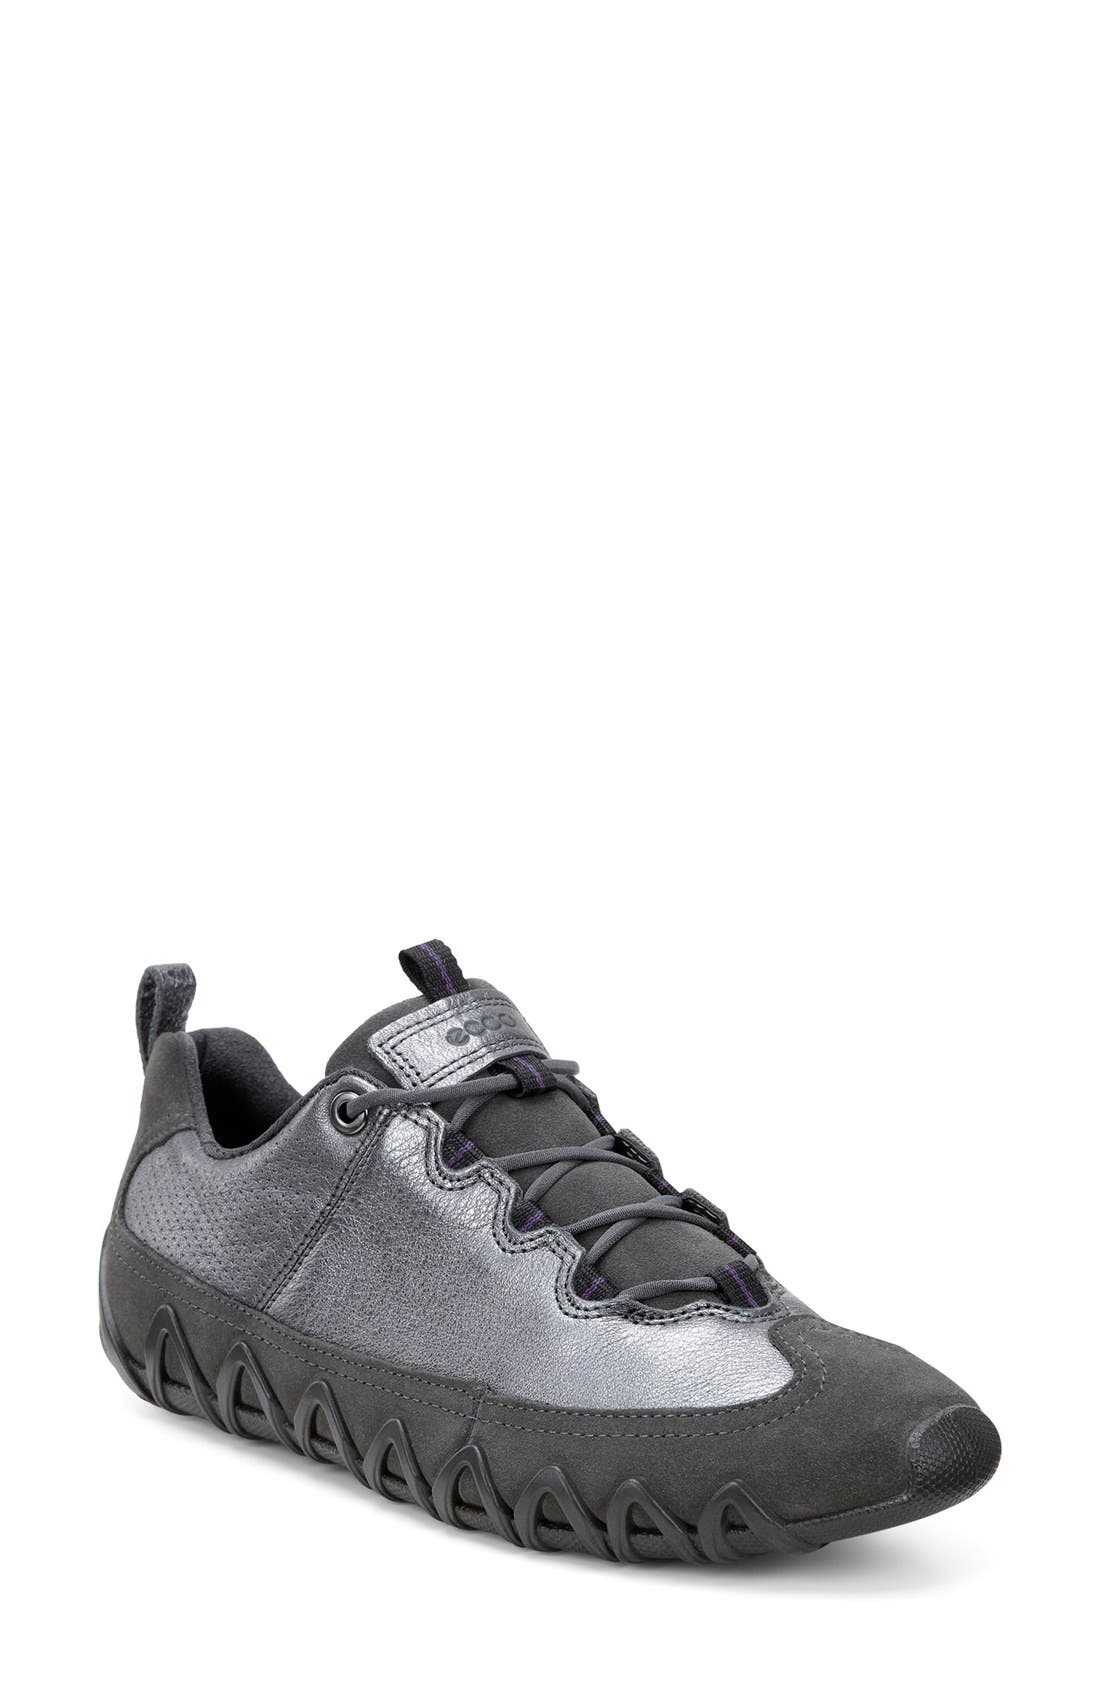 'Dayla' Toggle Sneaker,                         Main,                         color, 040